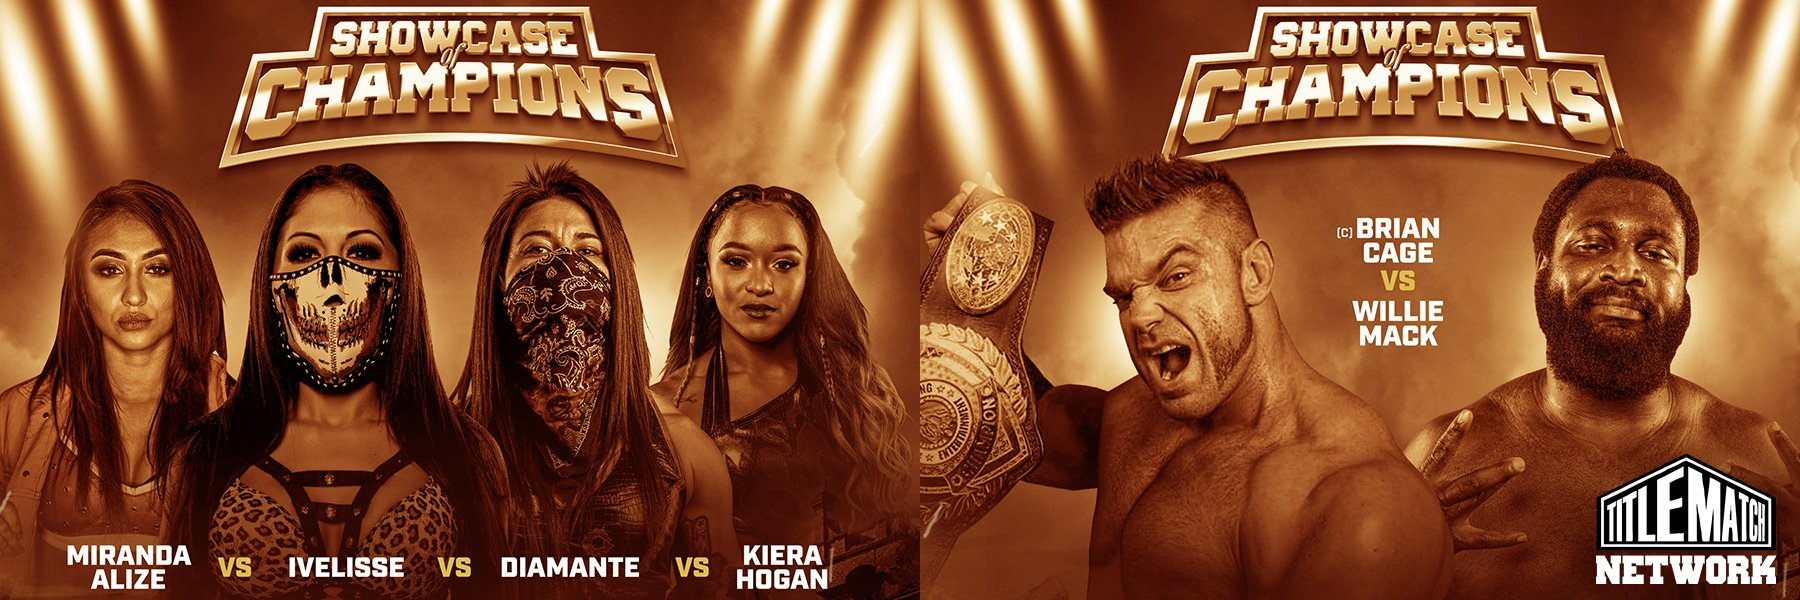 Showcase of Champions Live iPPV 11.29 (Brian Cage vs Willie Mack, Ivelisse)